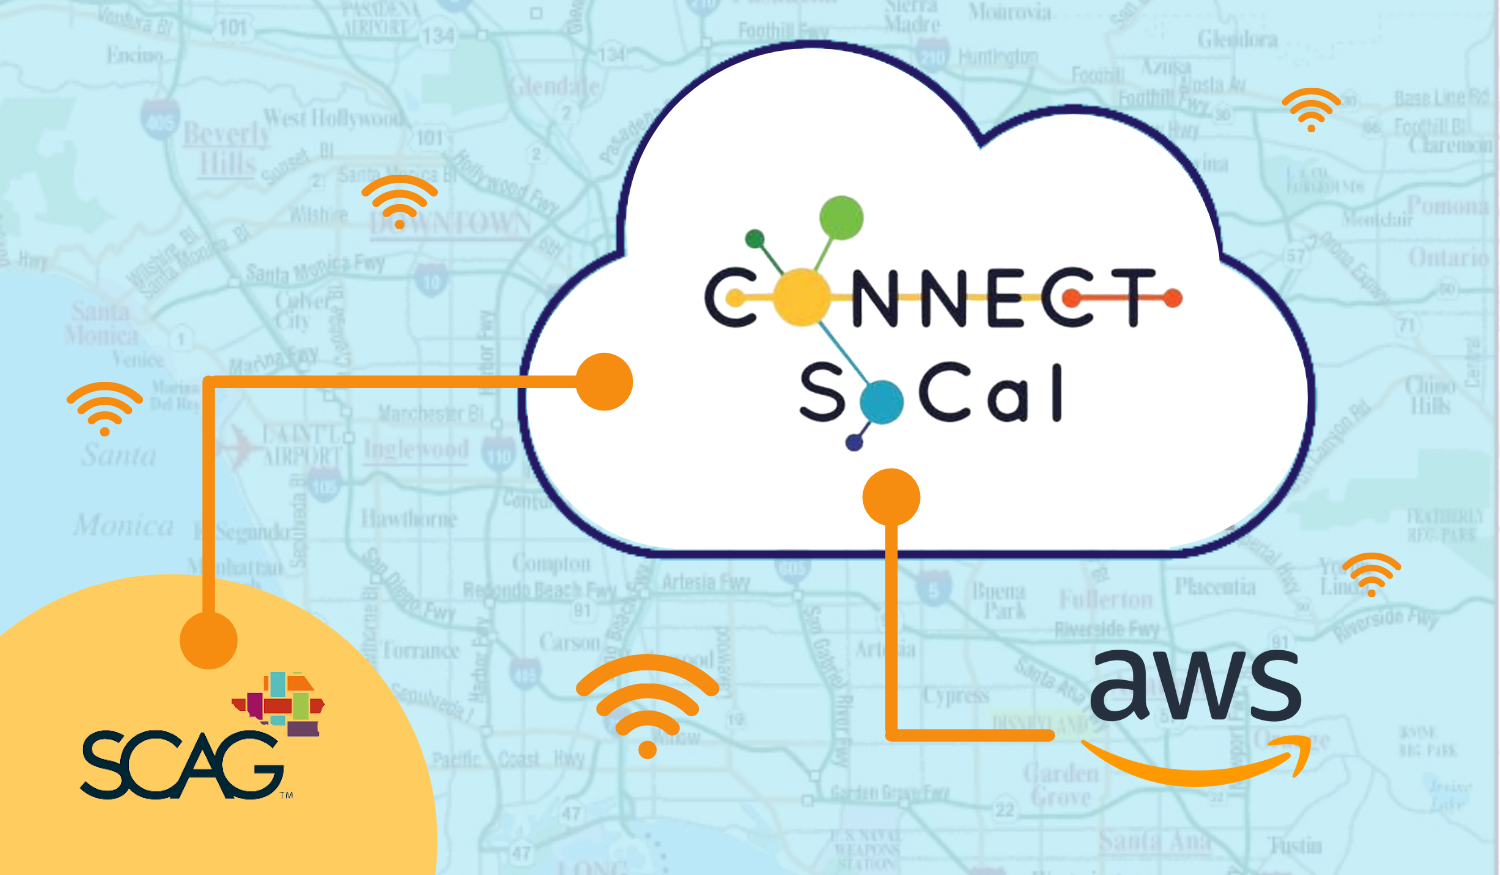 AWS, SCAG, and Connect SoCal meet in the Web Cloud.